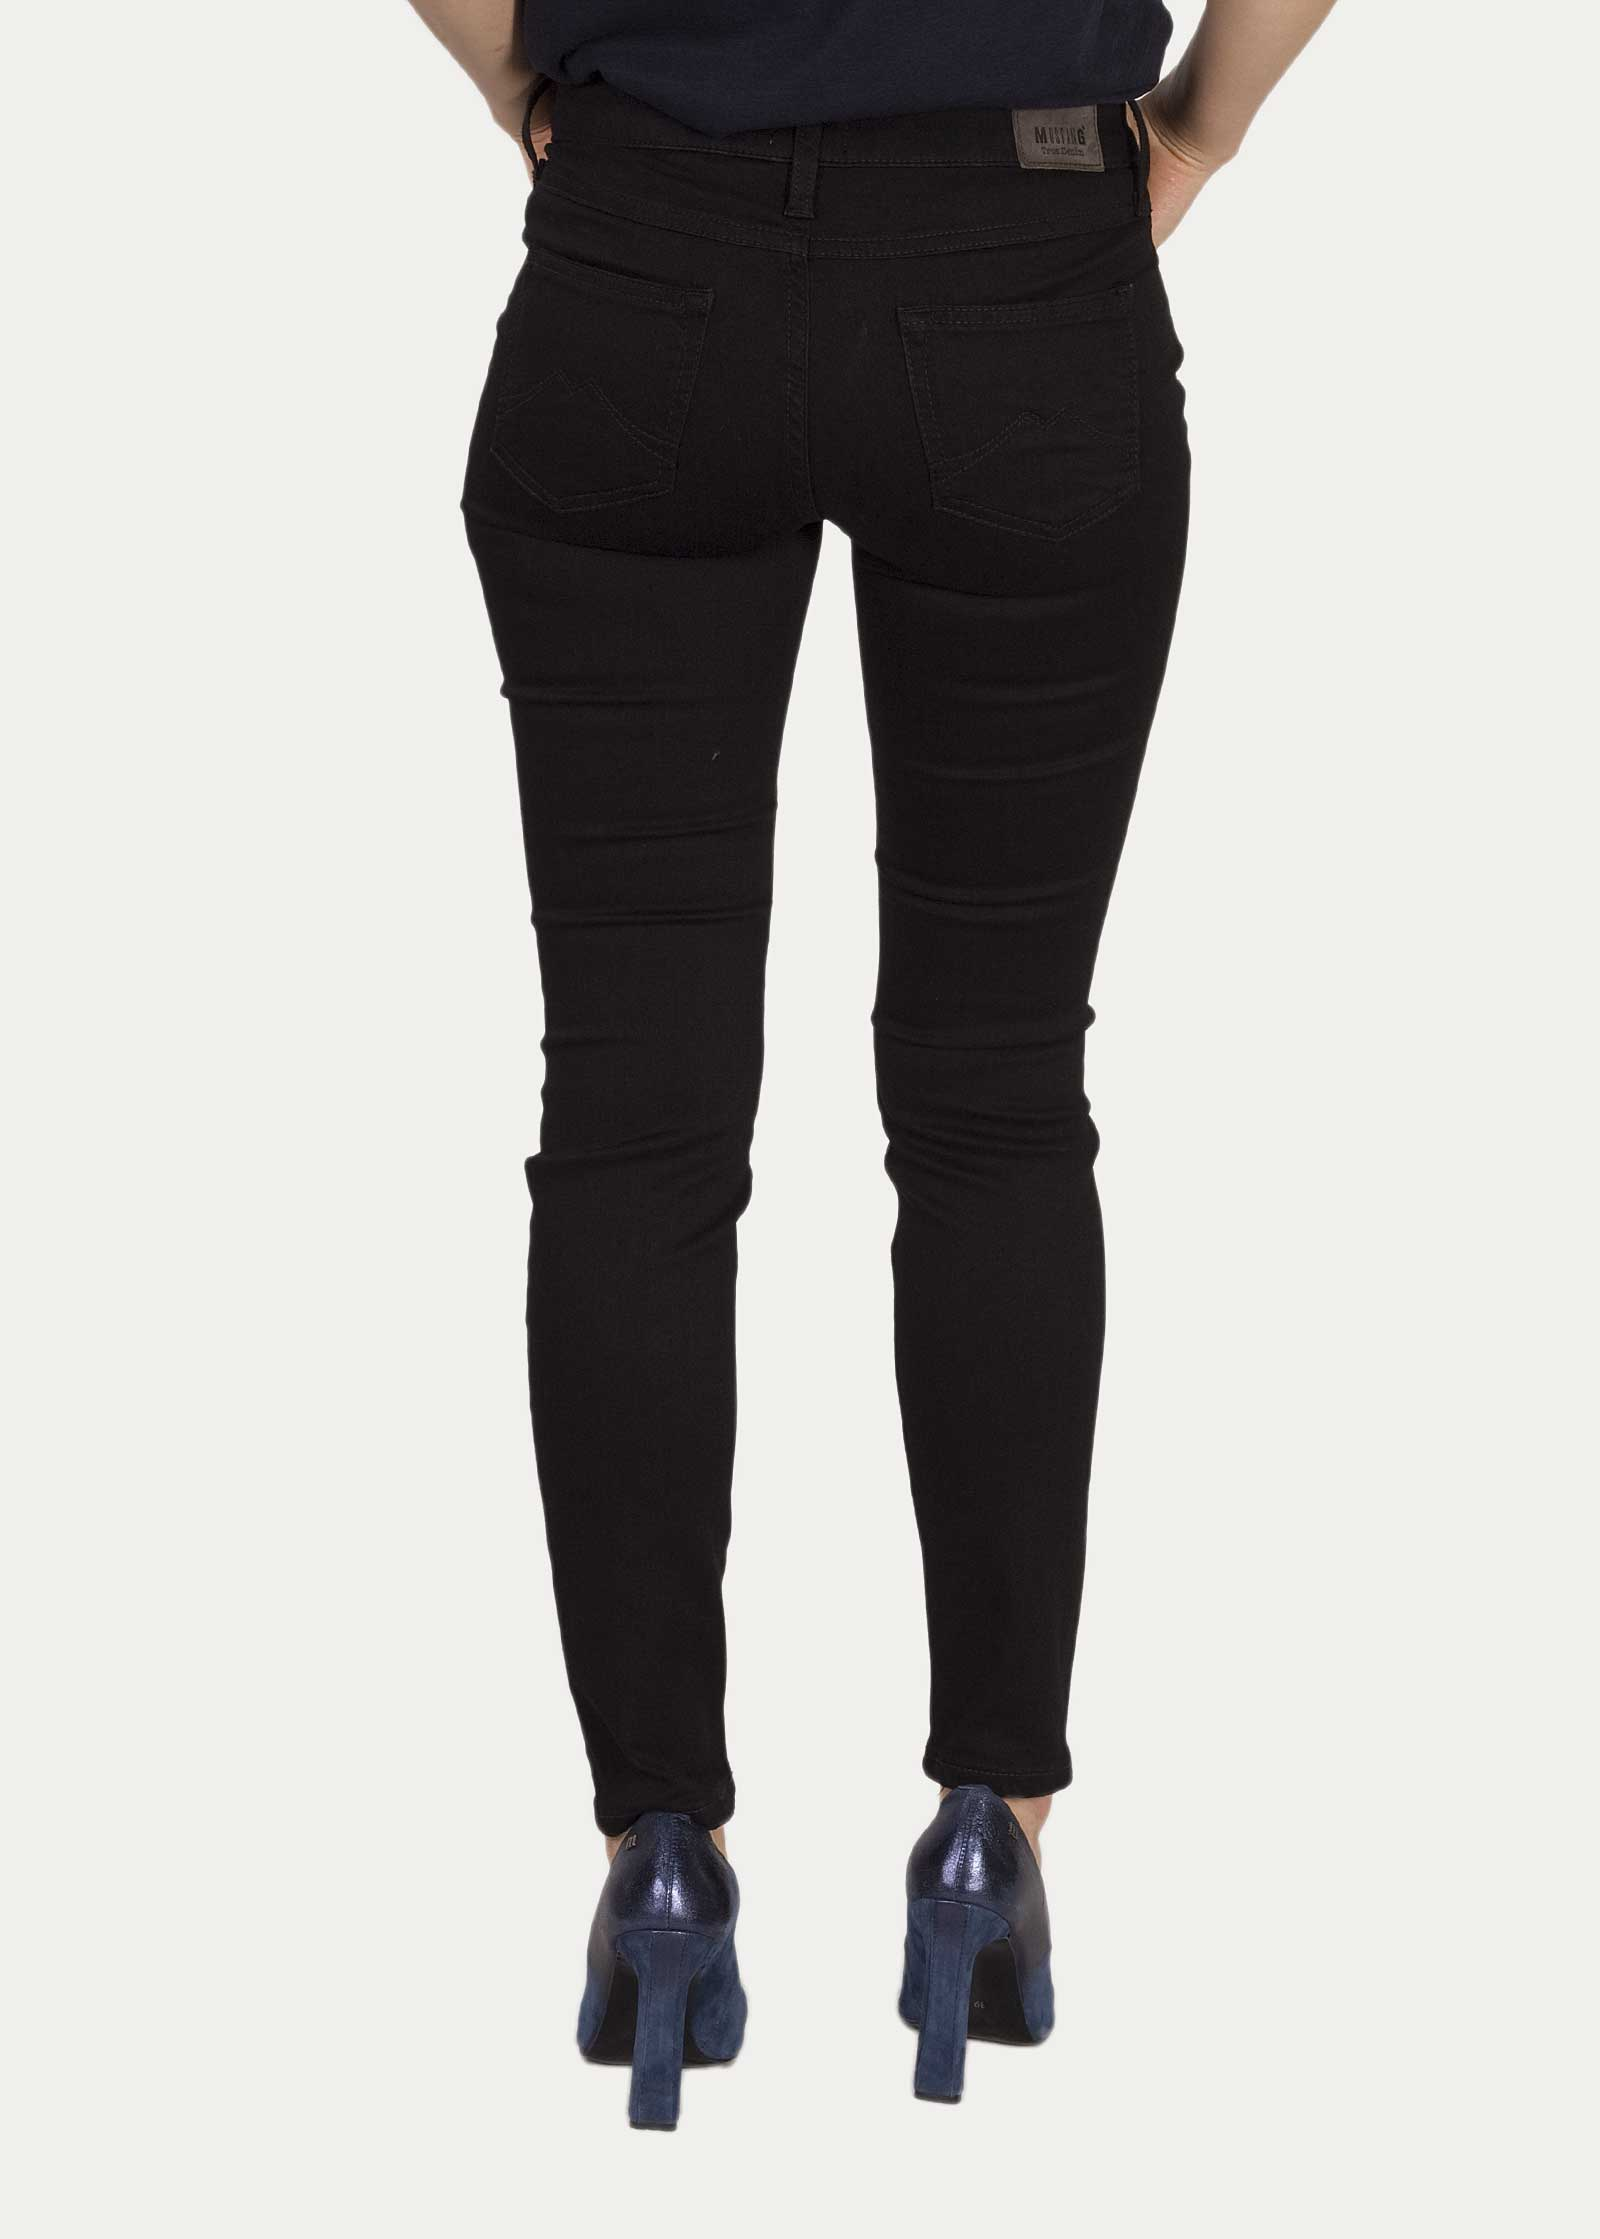 Mustang® Jasmin Jeggins - 940 Super Dark - elements